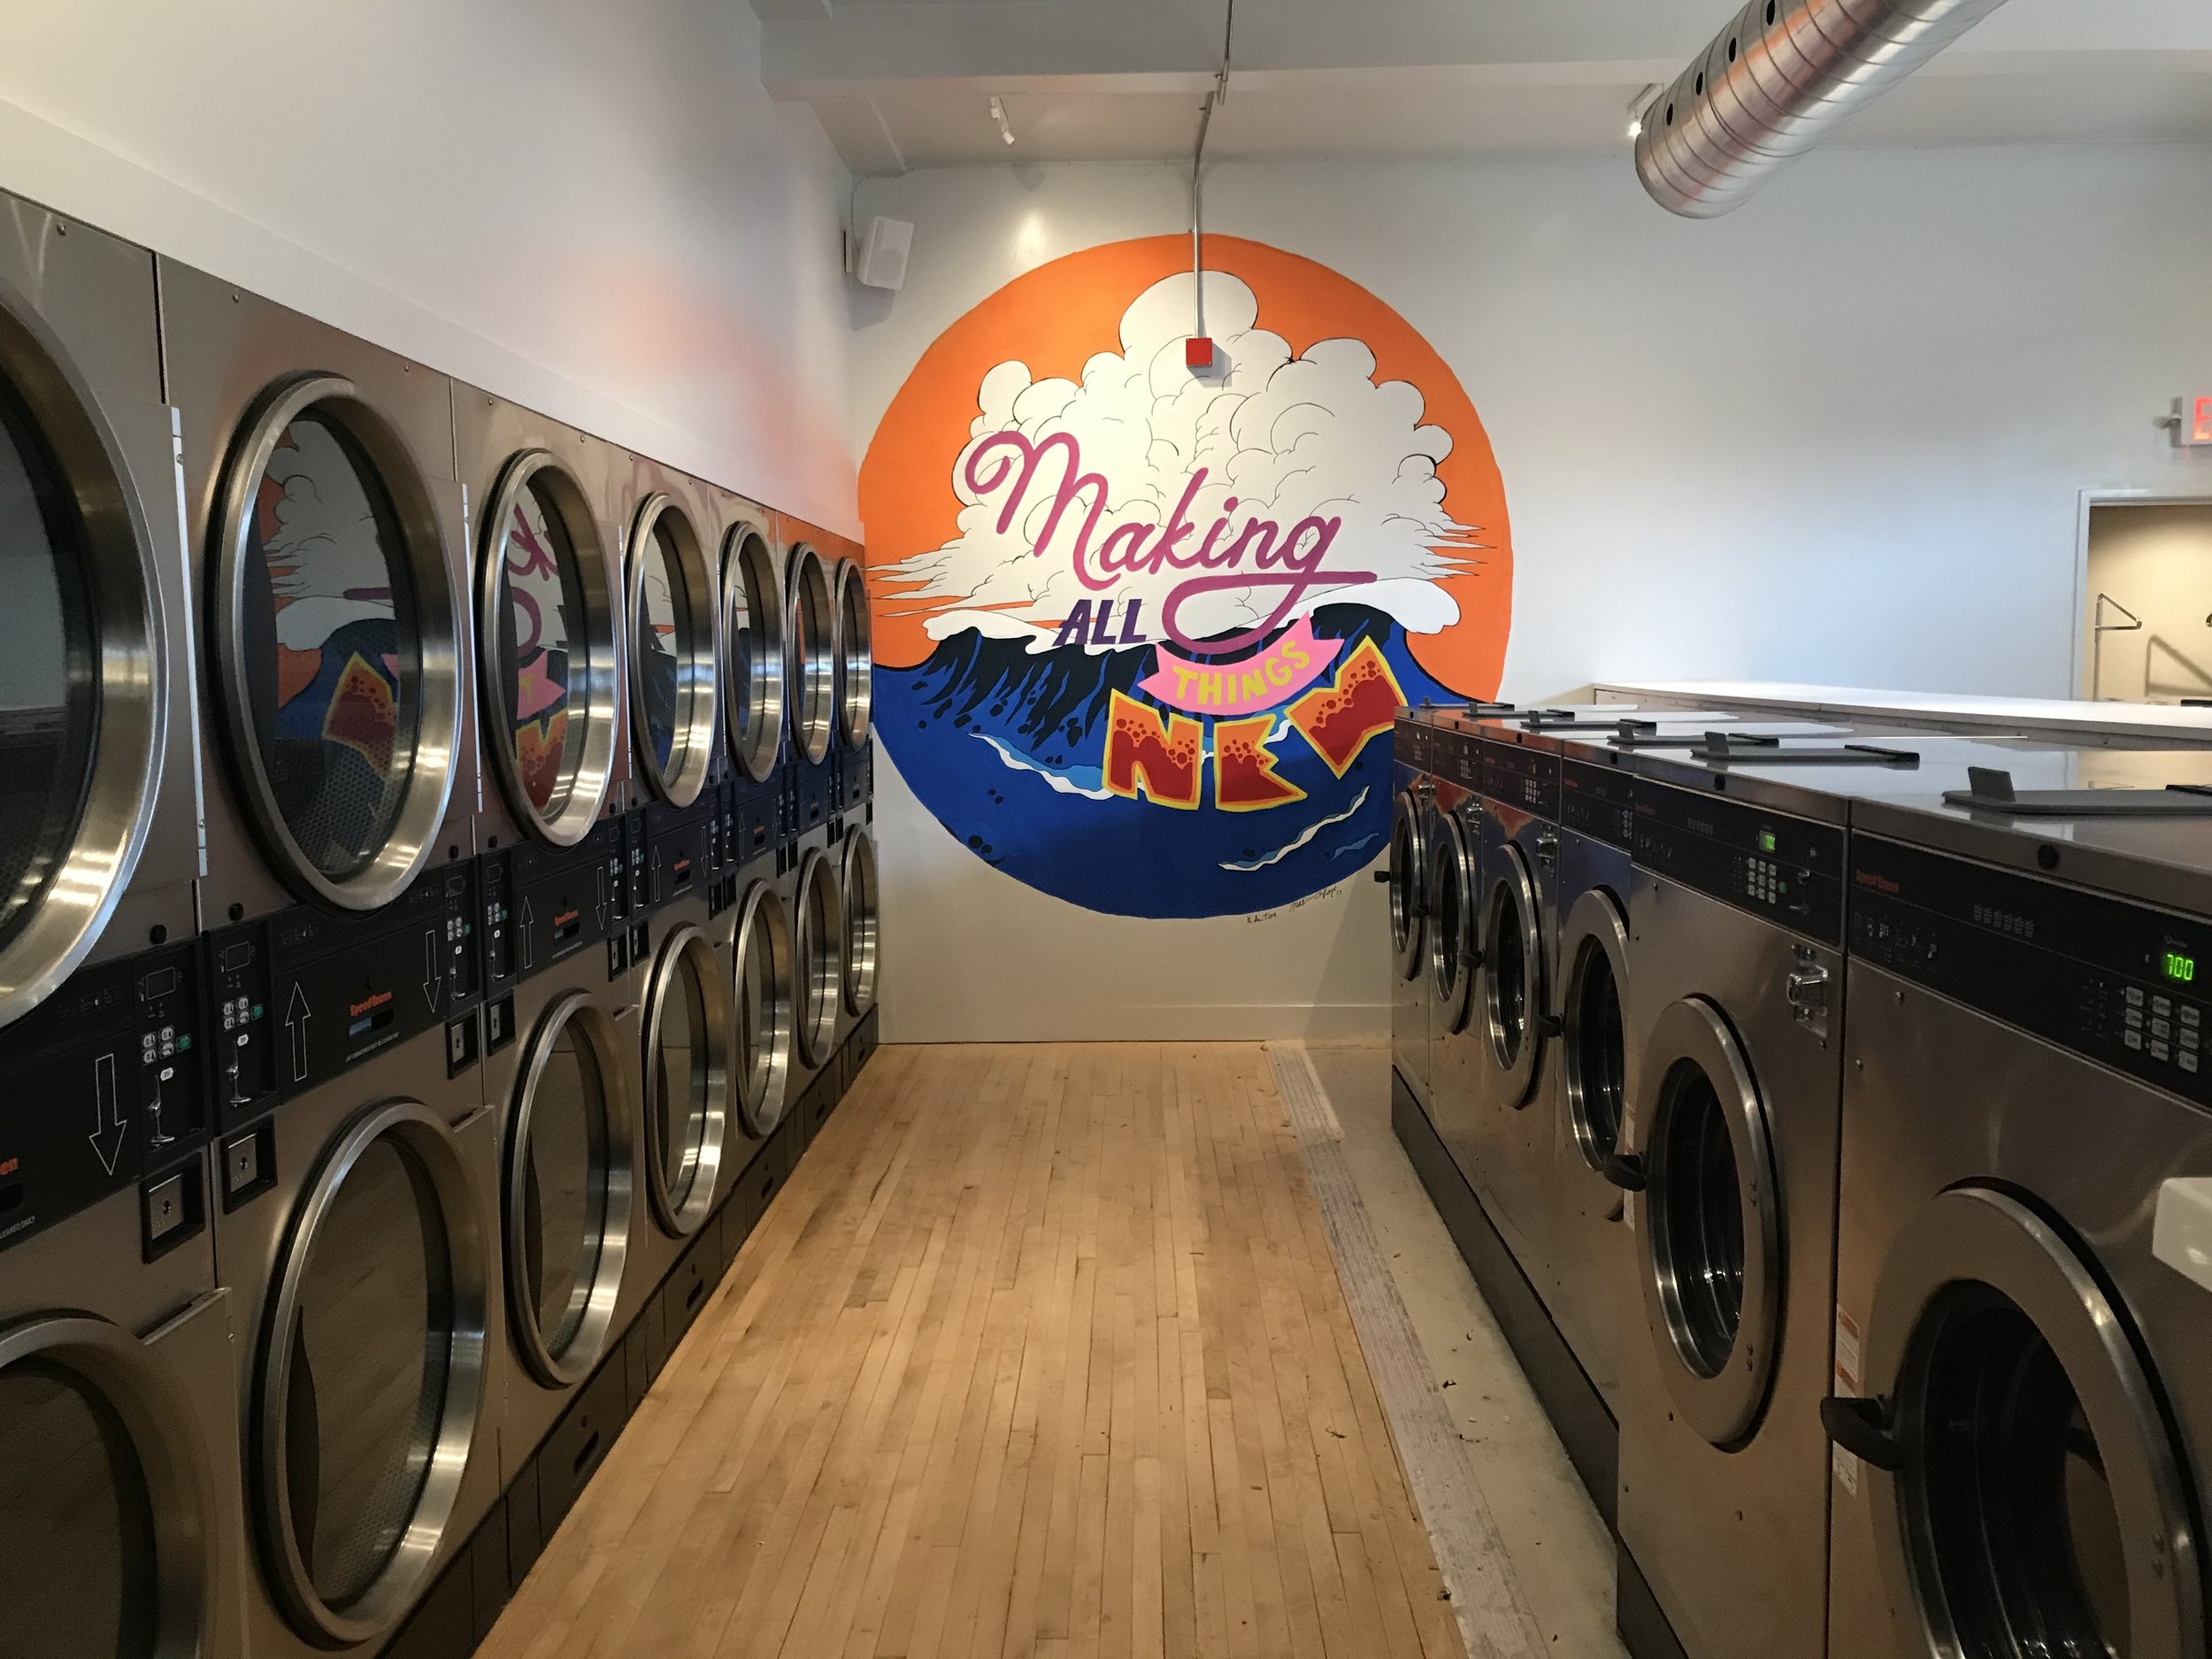 Laundry Mat inside The Commons - When the commons was being developed and the community was engaged on what are the needs a the top of the list was a laundry mat.